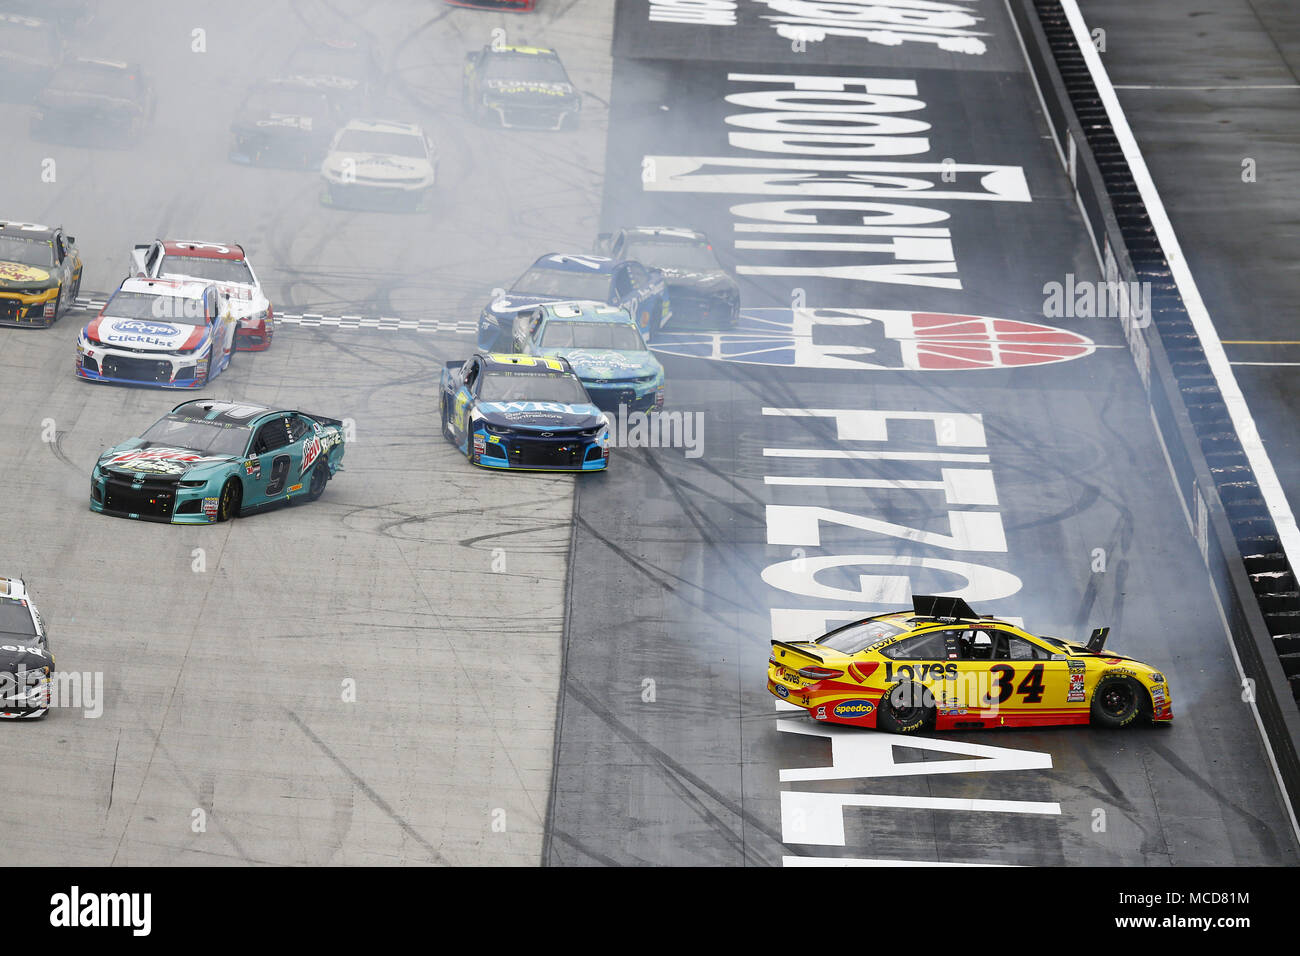 Bristol, Tennessee, USA. 15th Apr, 2018. April 15, 2018 - Bristol, Tennessee, USA: Michael McDowell (34) and Chase Elliott (9) spin to the infield to bring out a caution during the Food City 500 at Bristol Motor Speedway in Bristol, Tennessee. Credit: Chris Owens Asp Inc/ASP/ZUMA Wire/Alamy Live News - Stock Image